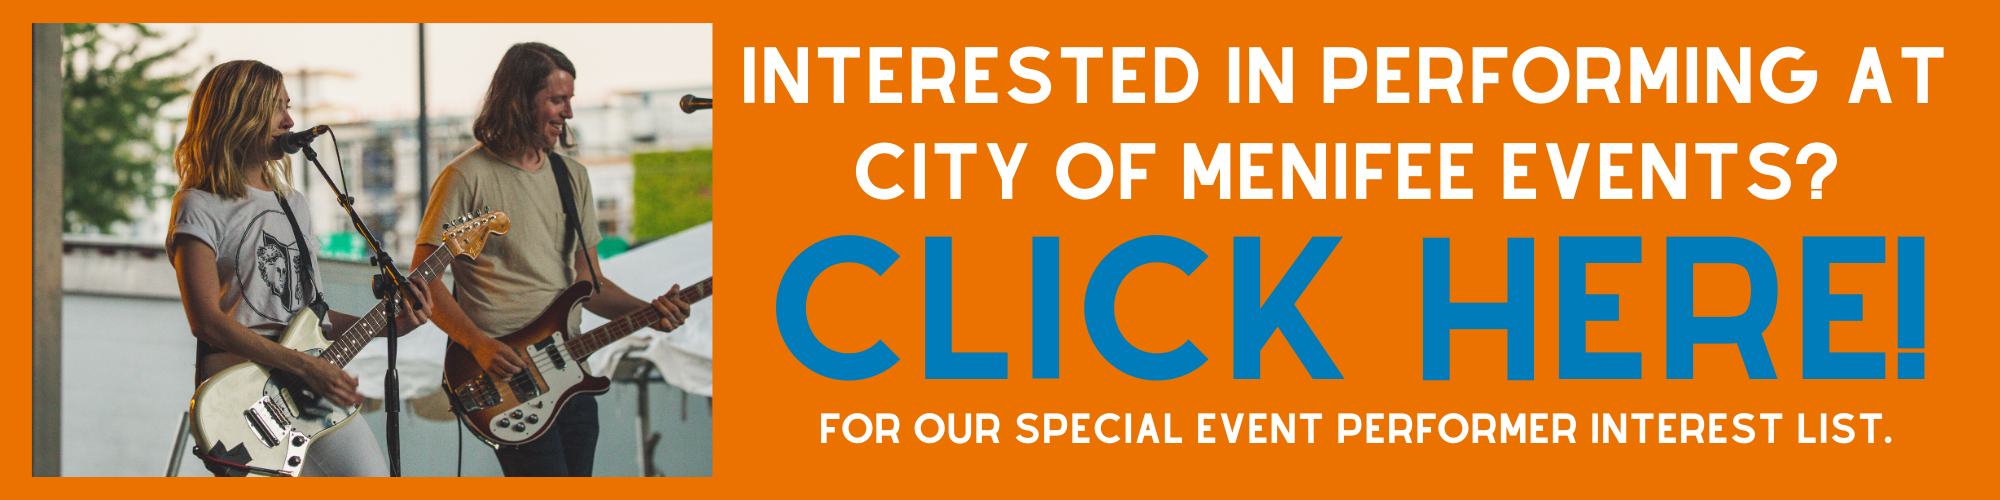 Interested in performing at City of Menifee Events button